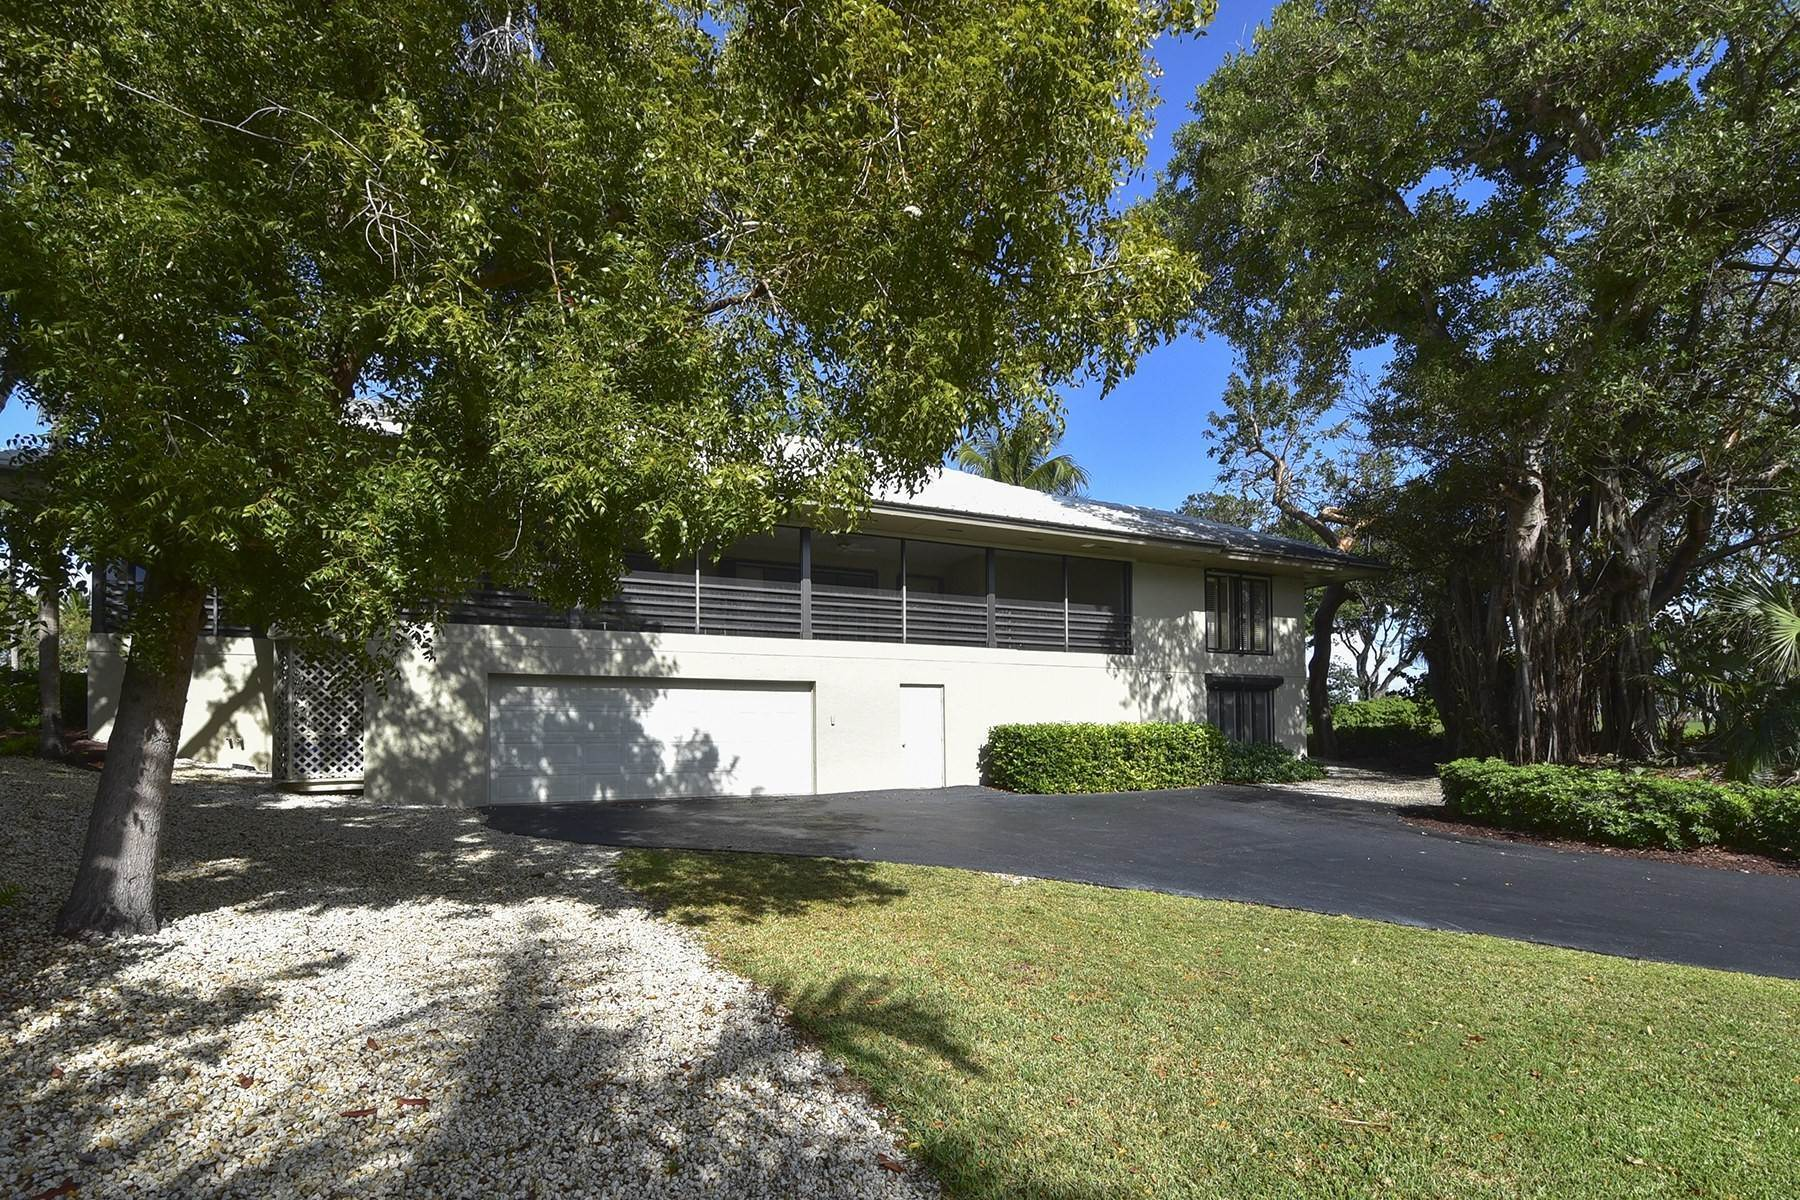 19. Property por un Venta en Pumpkin Key - Private Island, Key Largo, FL Pumpkin Key - Private Island Key Largo, Florida 33037 Estados Unidos